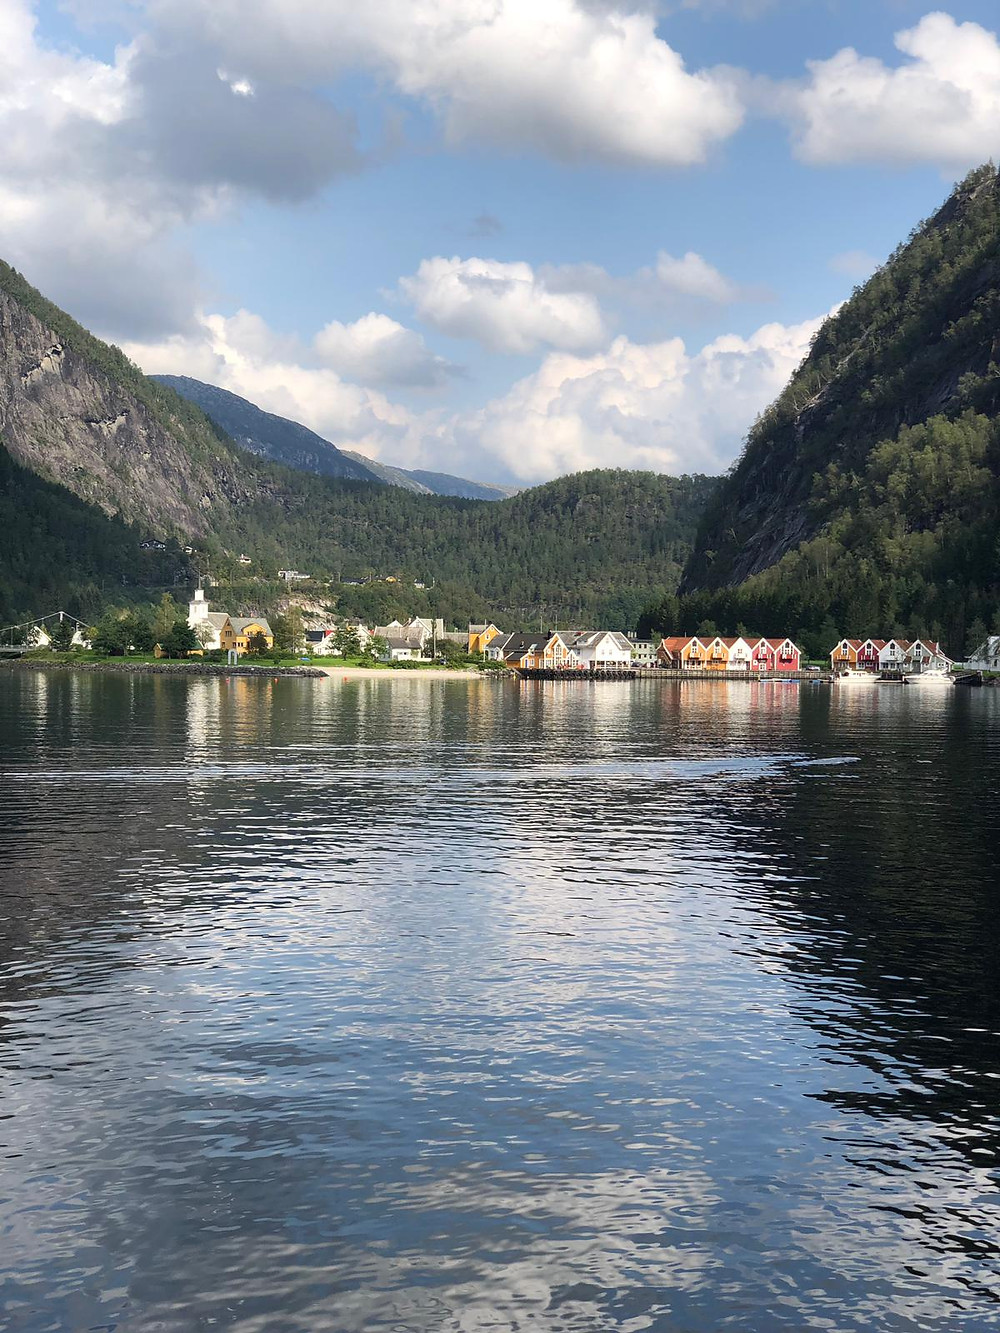 An image of a fjord, with a village in the background